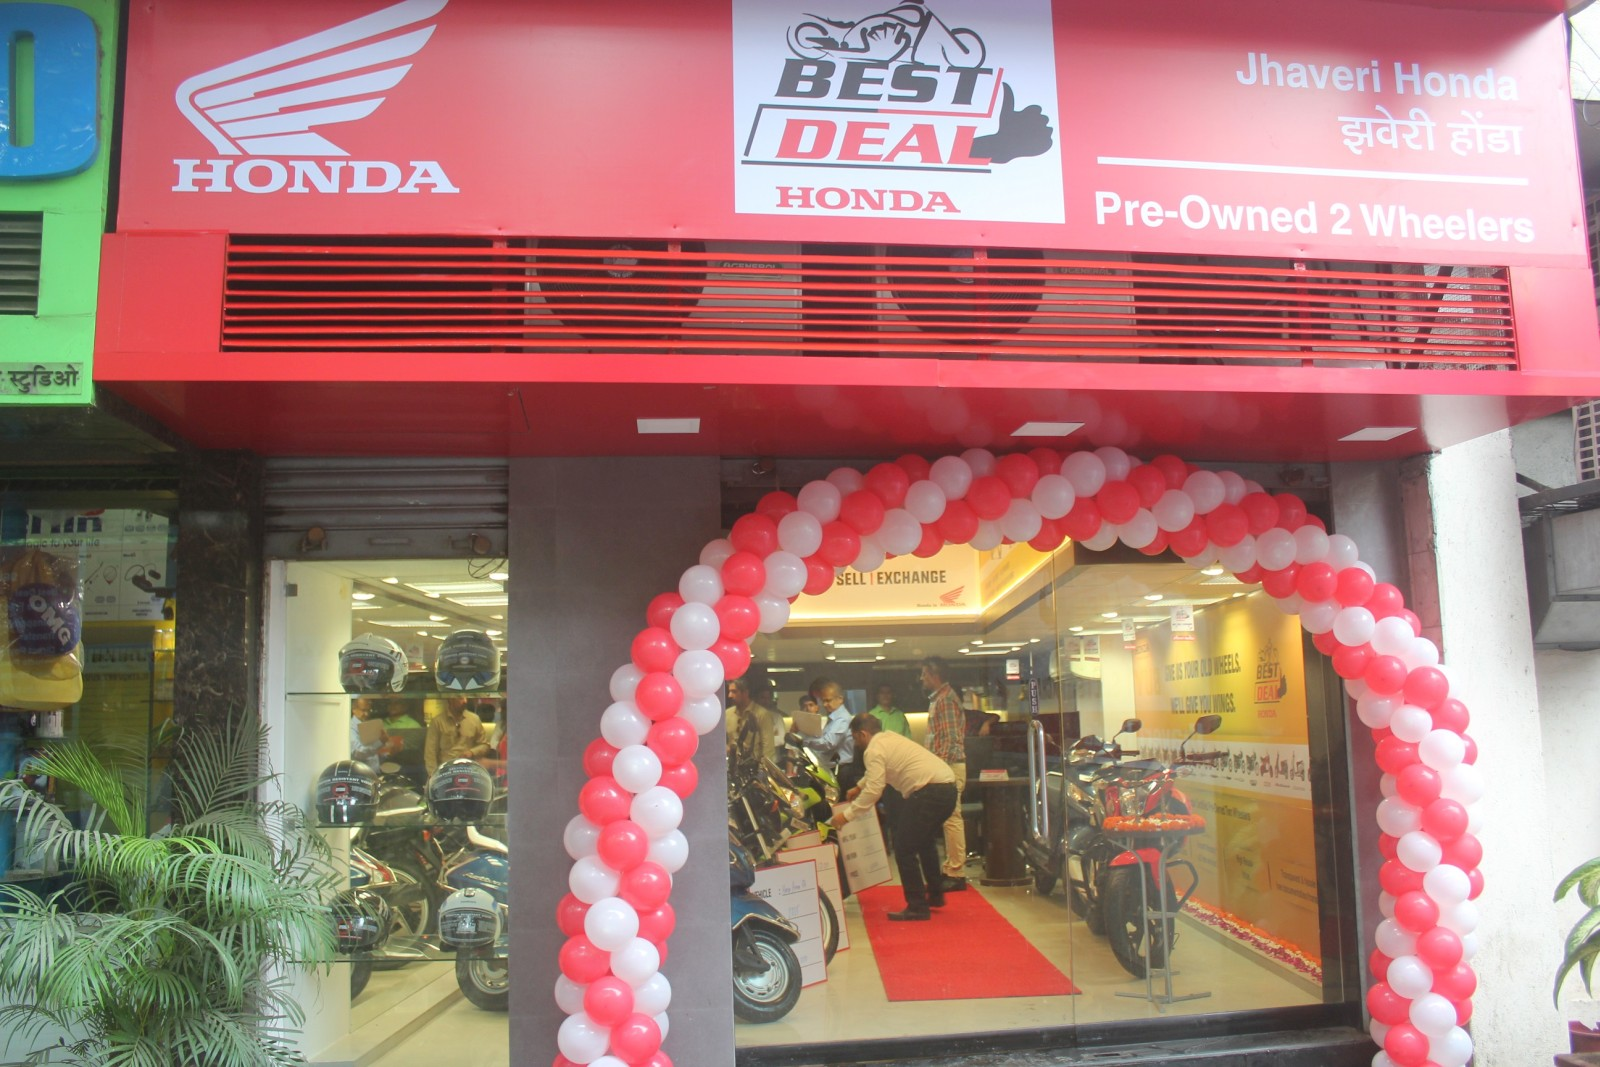 Honda 2Wheeler inaugurates its 100th Best Deal outlet (1)